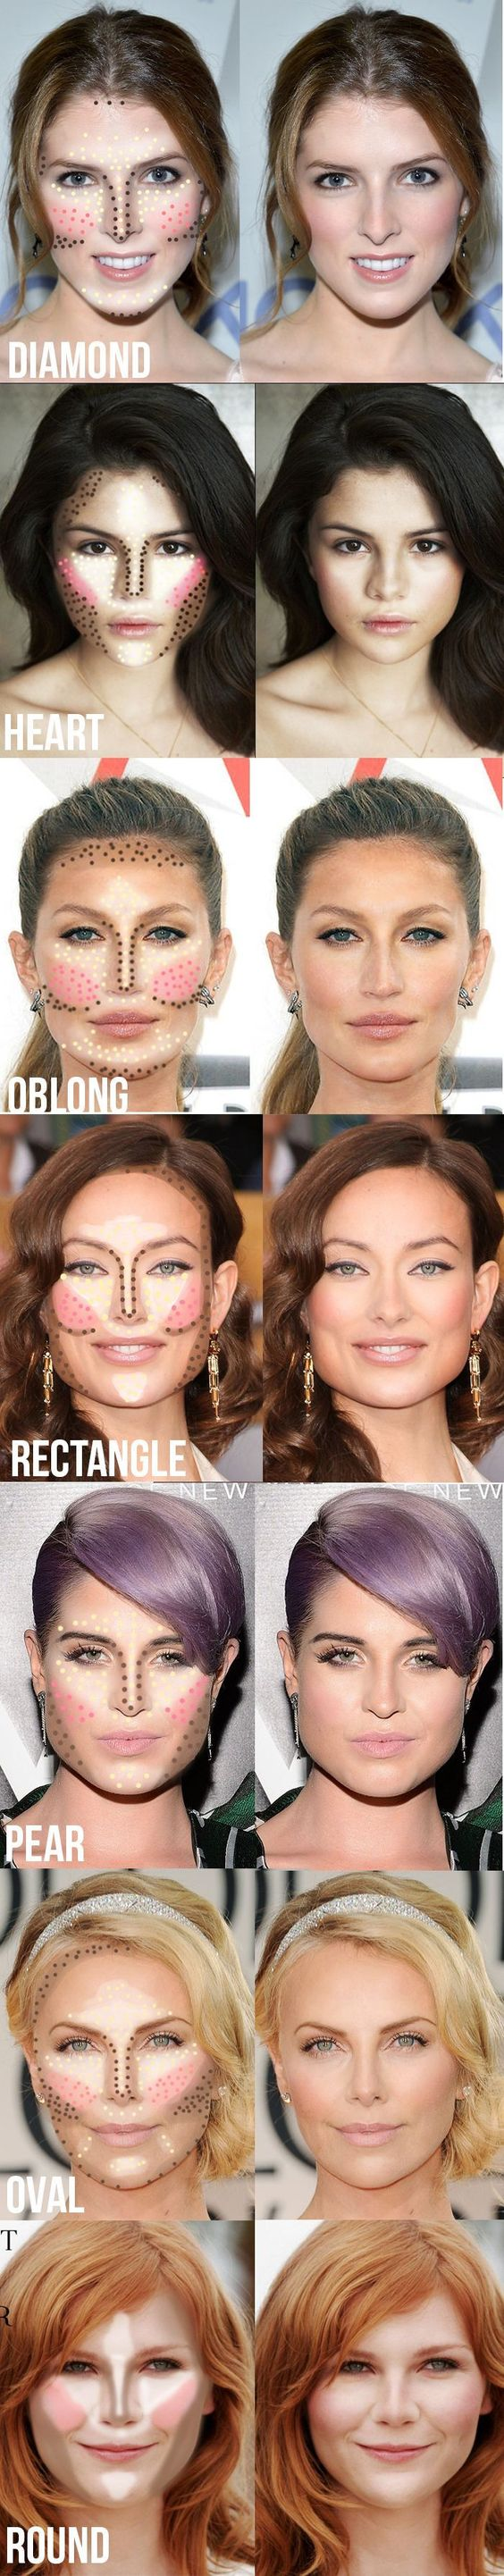 Contouring and Highlighting guide for your face shape: